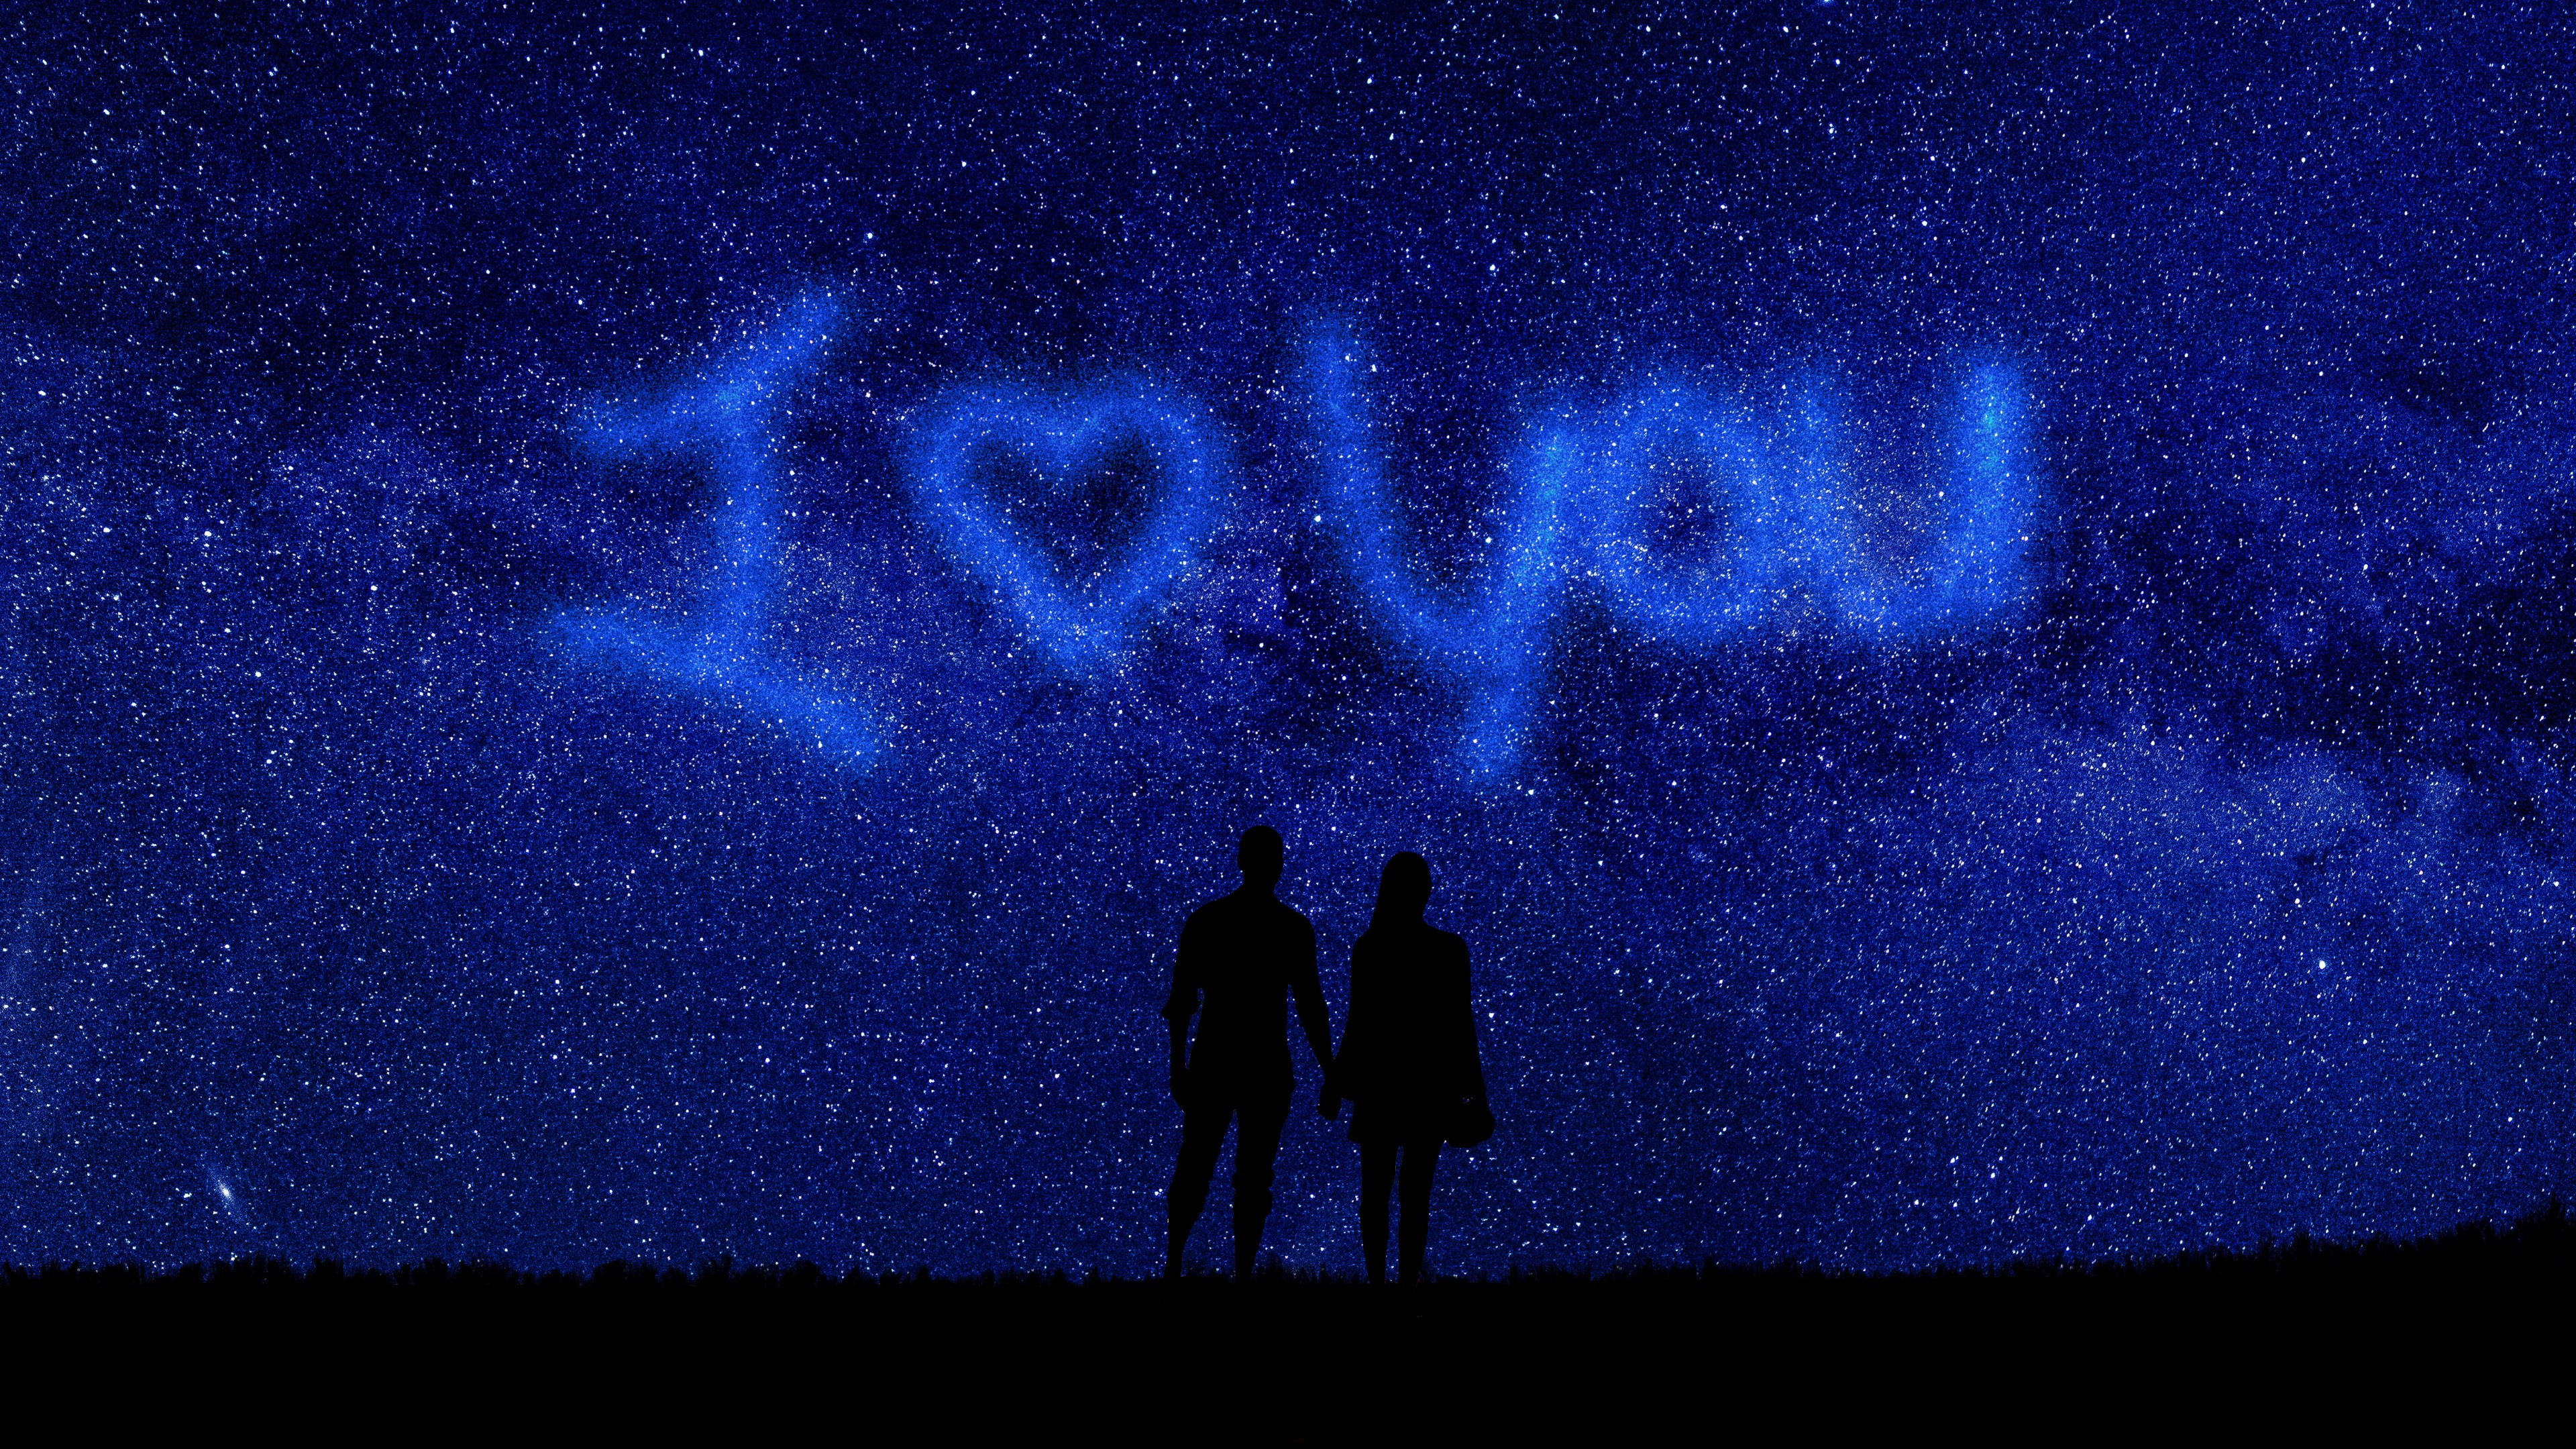 I Love You Couple Romantic Night 5k Wallpapers Hd Wallpapers